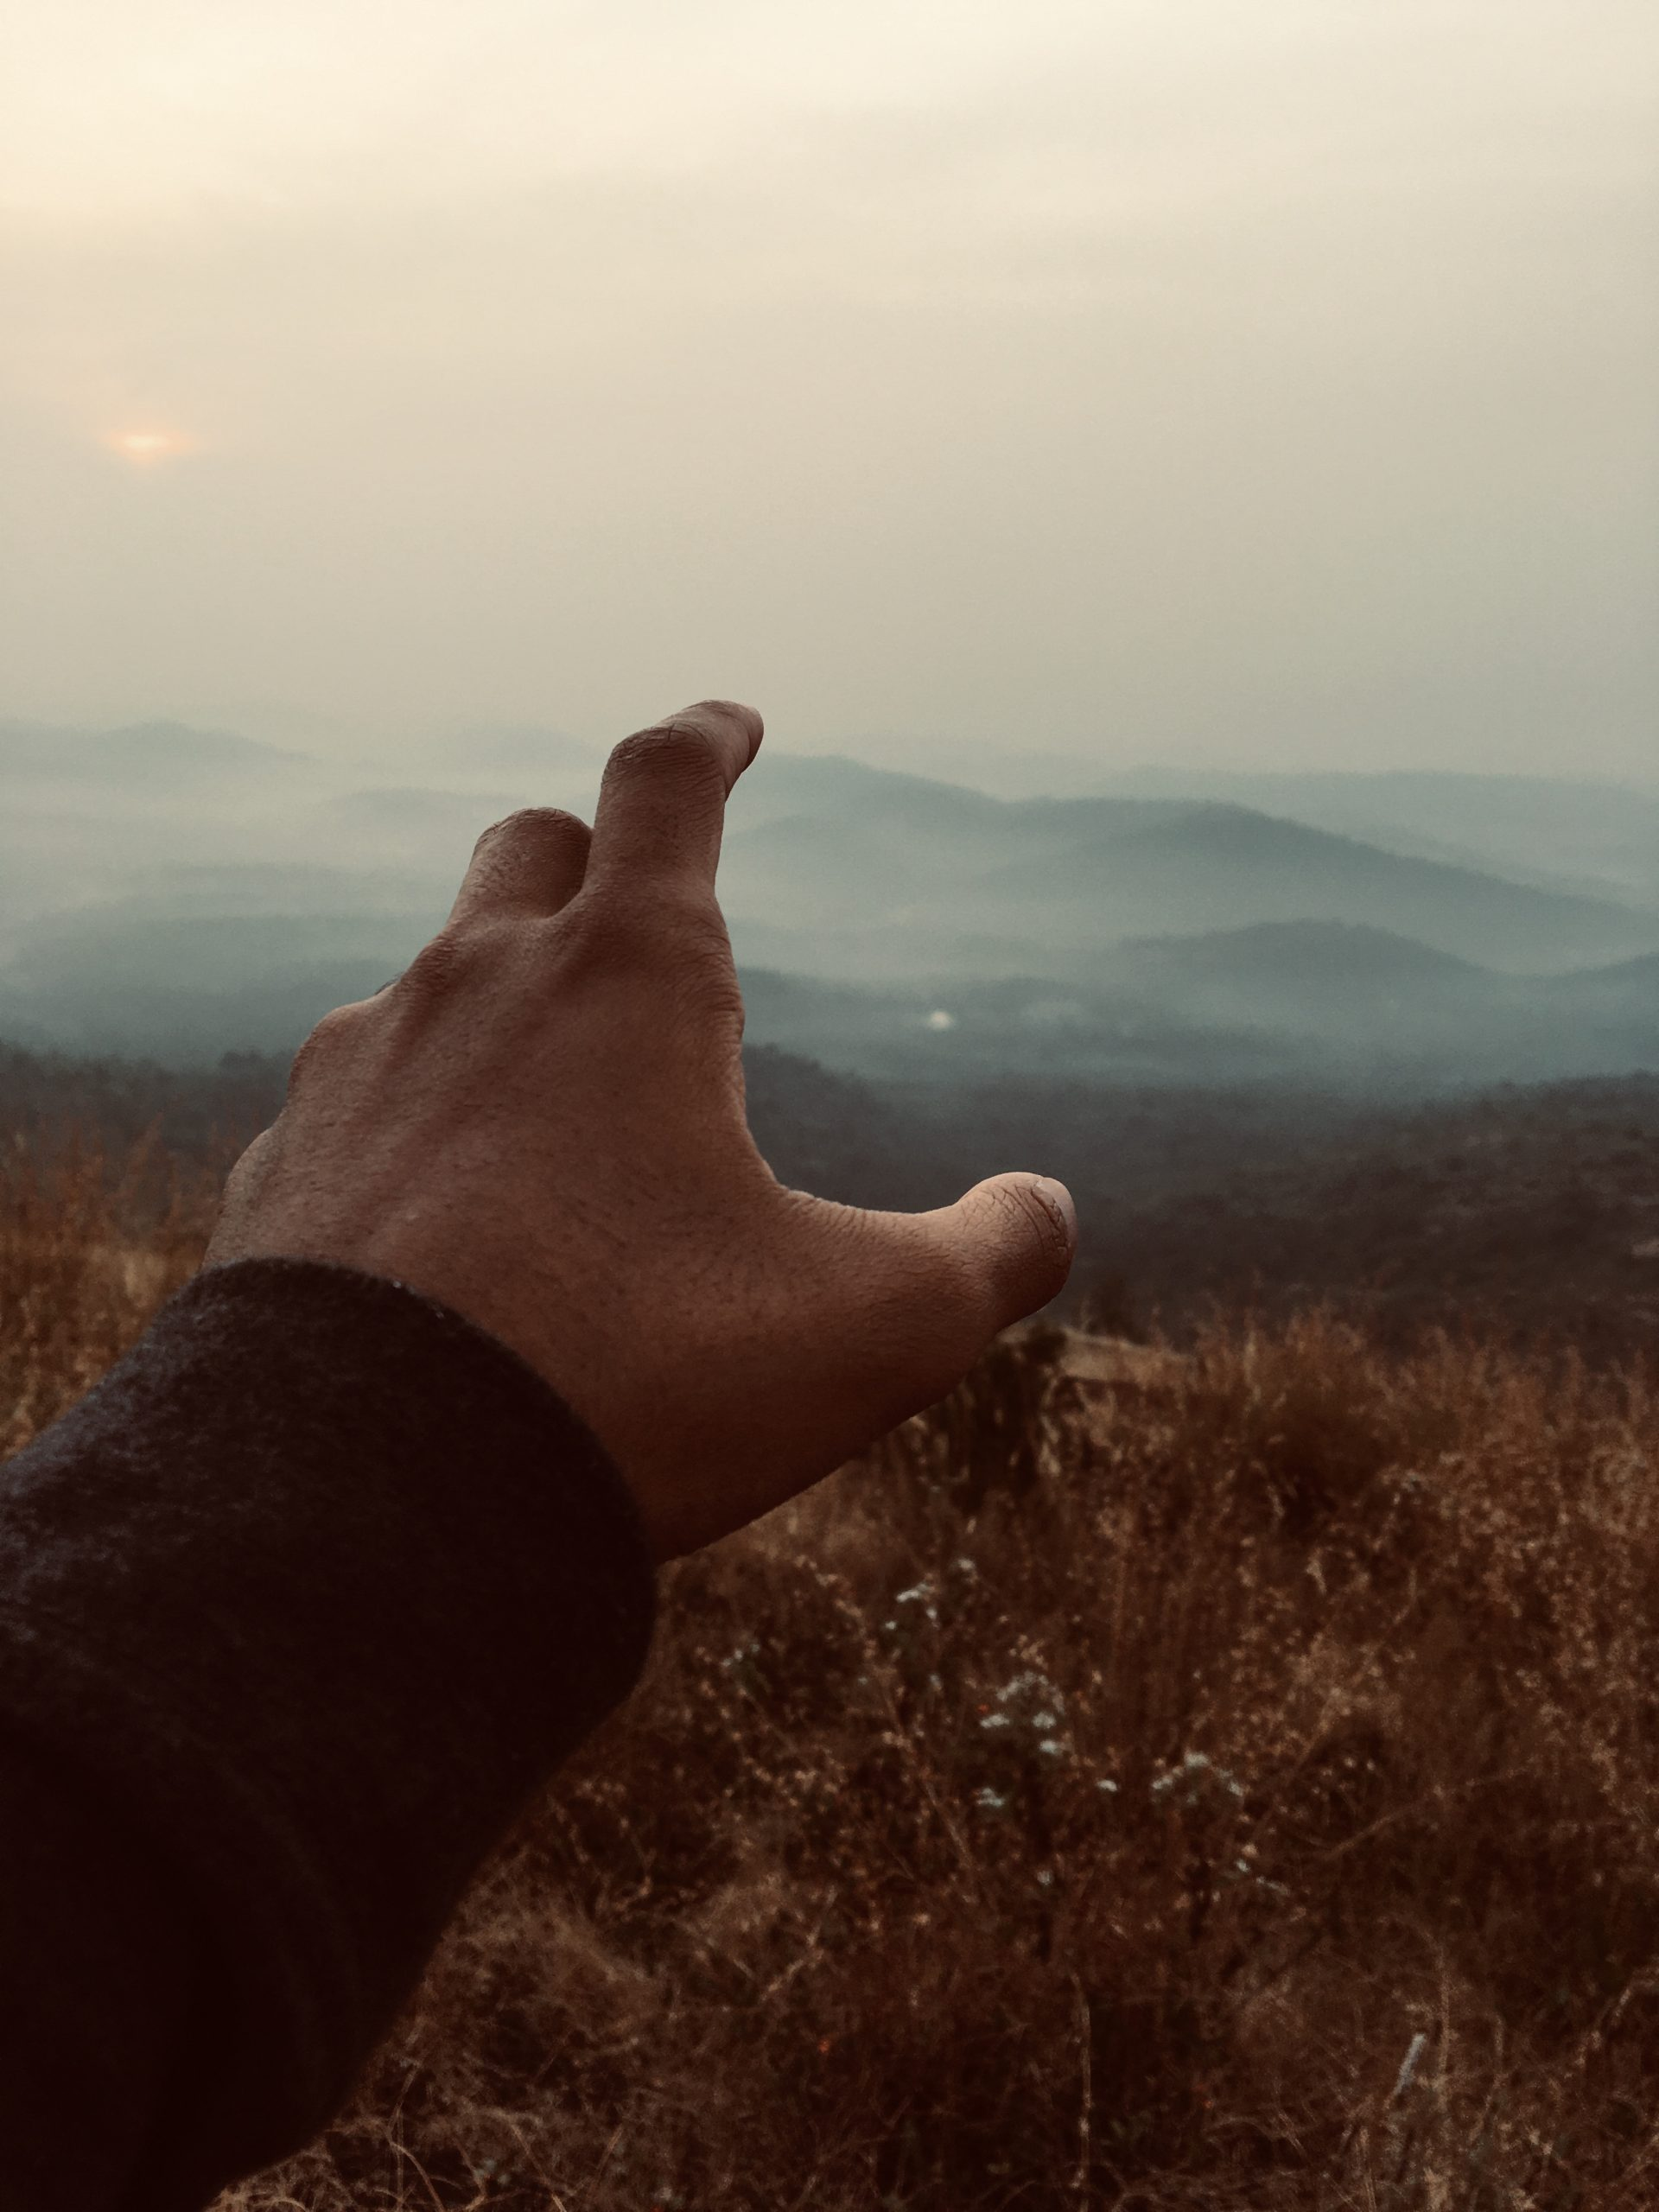 Hand towards mountains